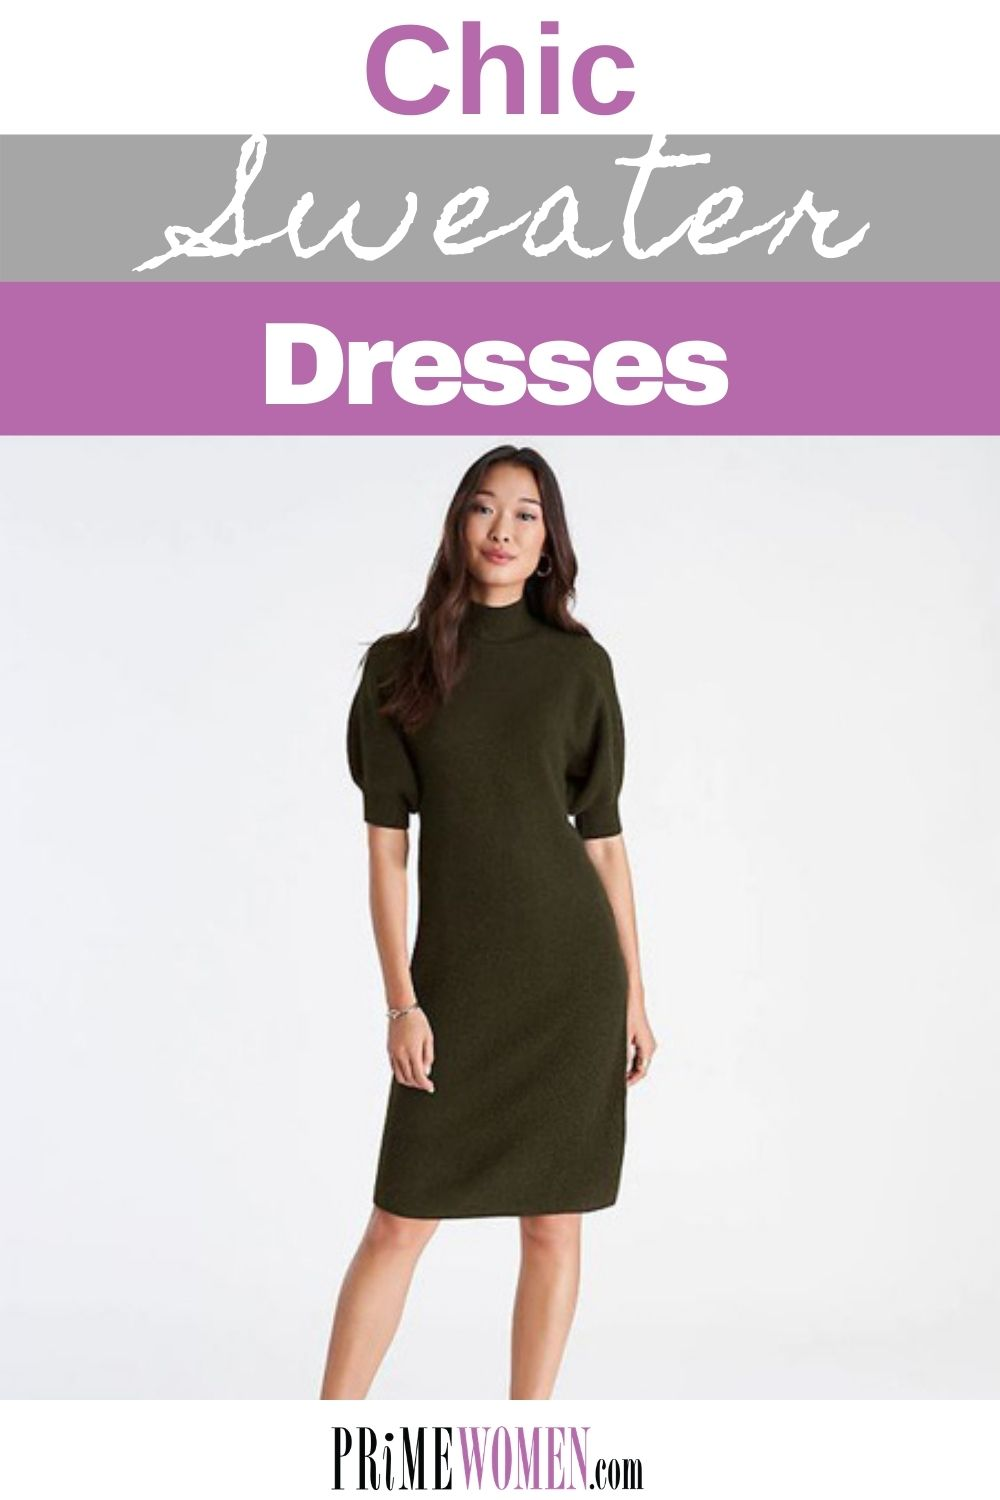 Chic Sweater Dresses